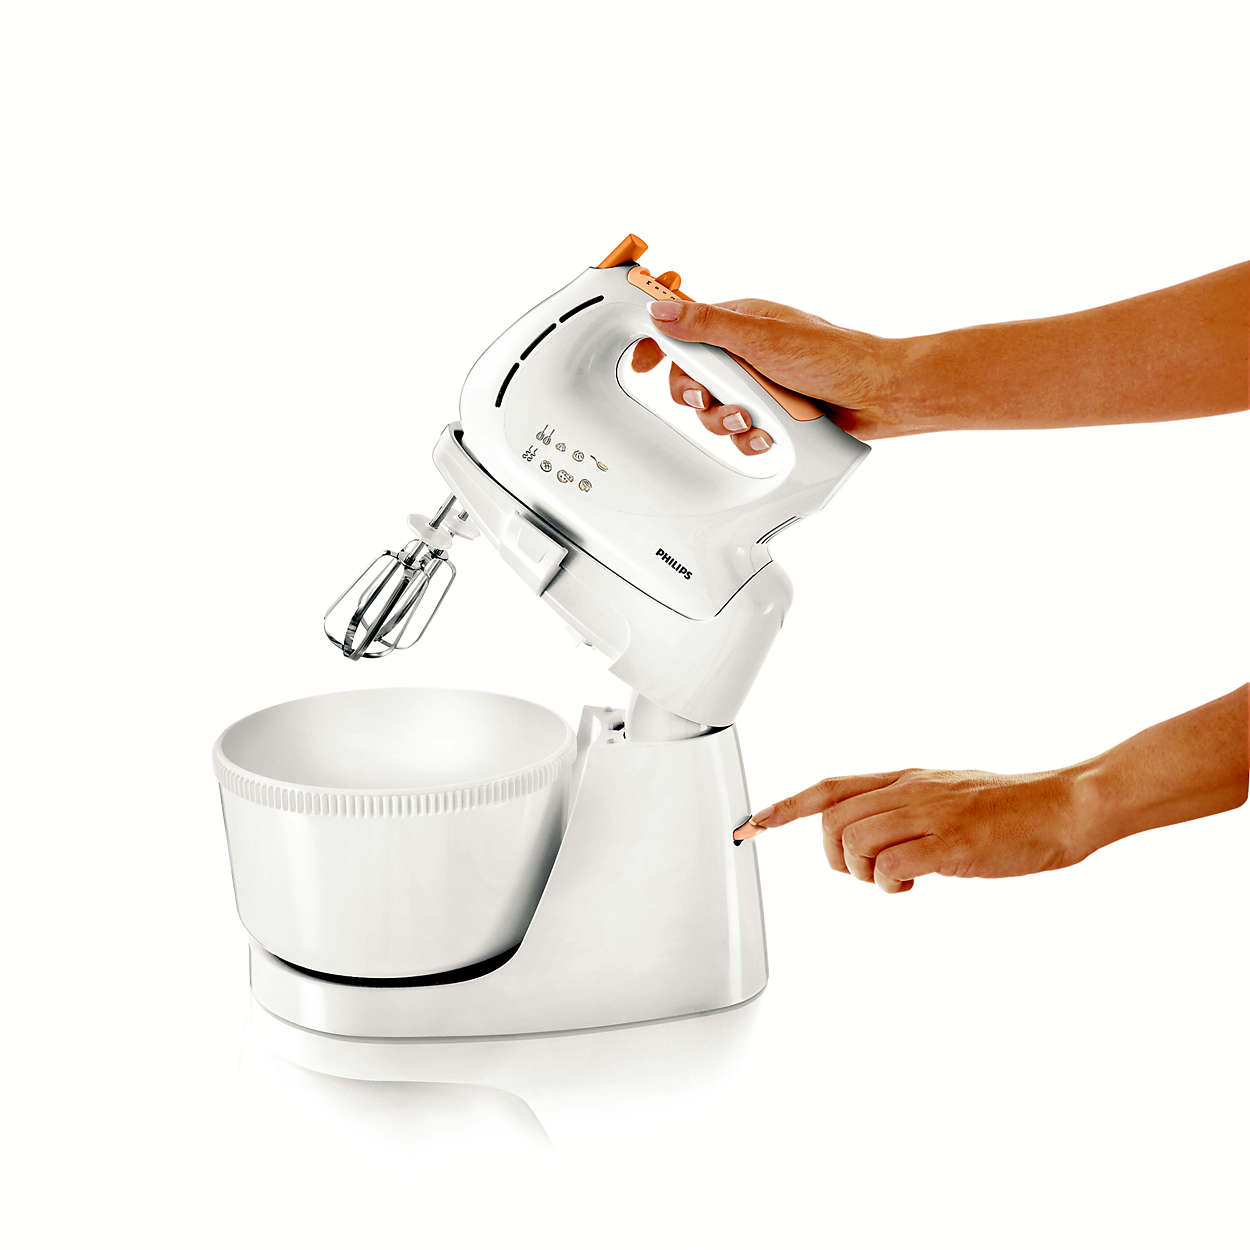 Stand Mixers Hr1538 80 Philips Mixer With Hr1559 Grey Prepare Homemade Delicacies Easily